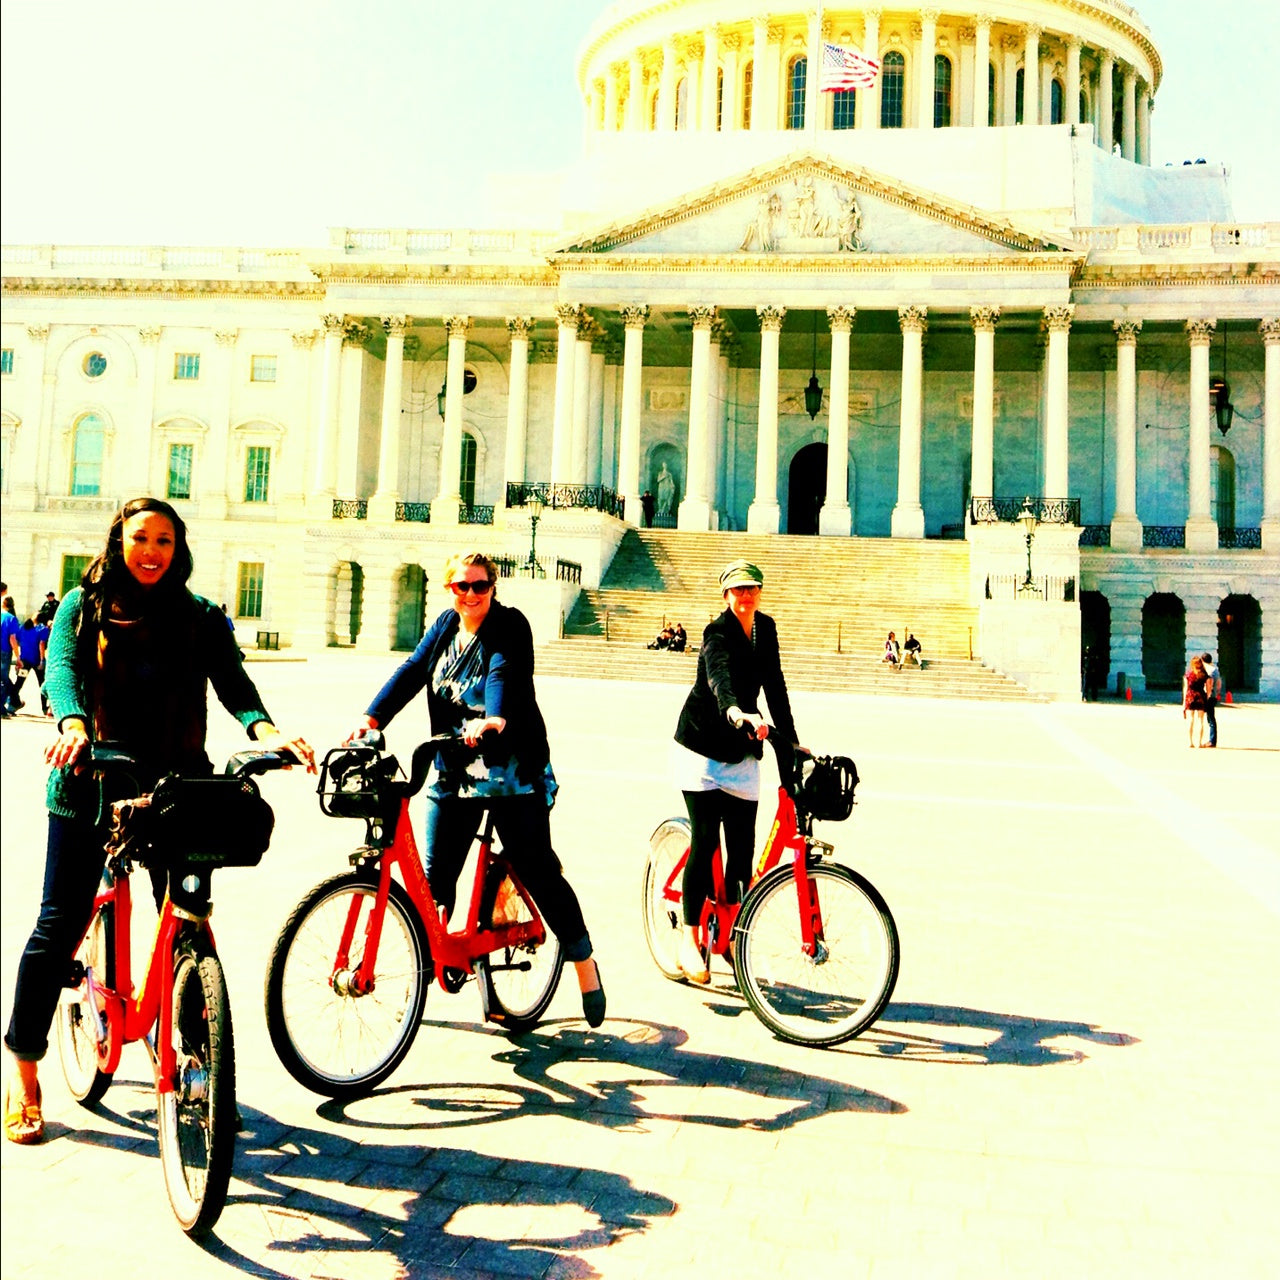 Three women riding rented bikes in front of the Capital building, in Washington, DC